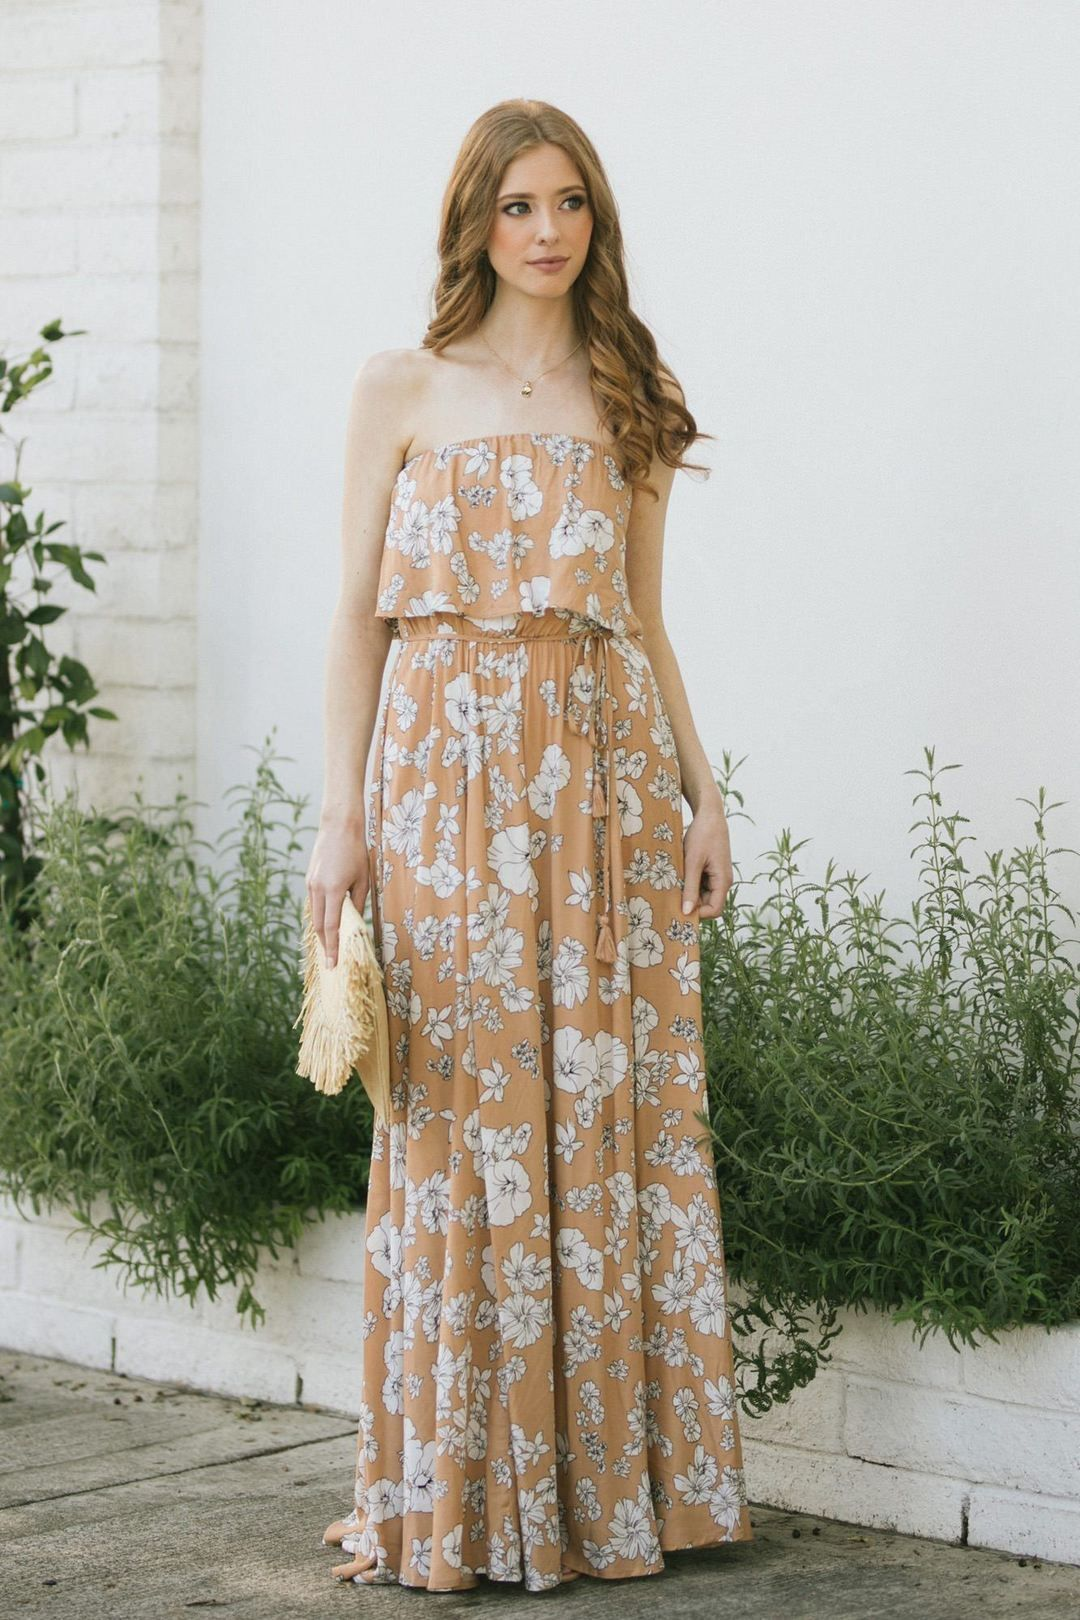 Shop The Clarisse Floral Strapless Maxi Dress Boutique Clothing Featuring Fresh Feminine And Affordable Styles Dresses Maxi Dress Strapless Maxi Dress [ 1620 x 1080 Pixel ]